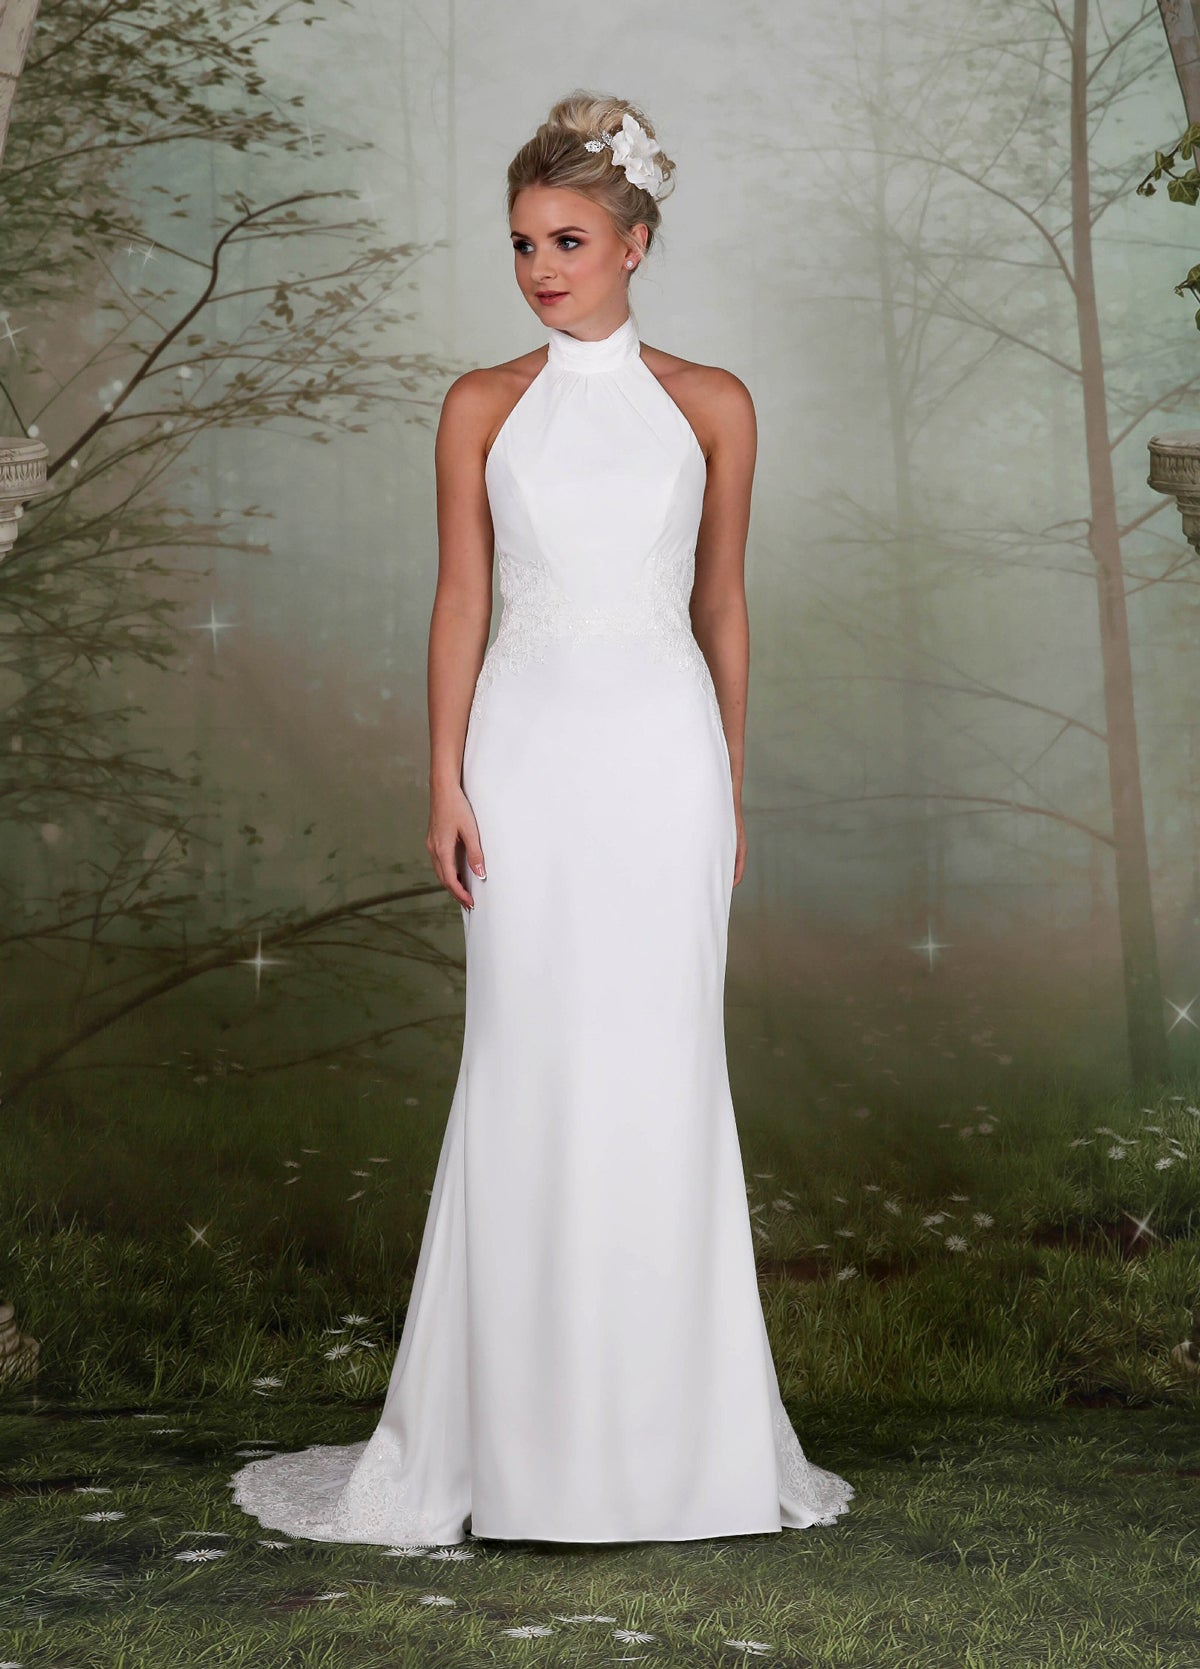 Soft high-necked gown from the Emma Bridals collection